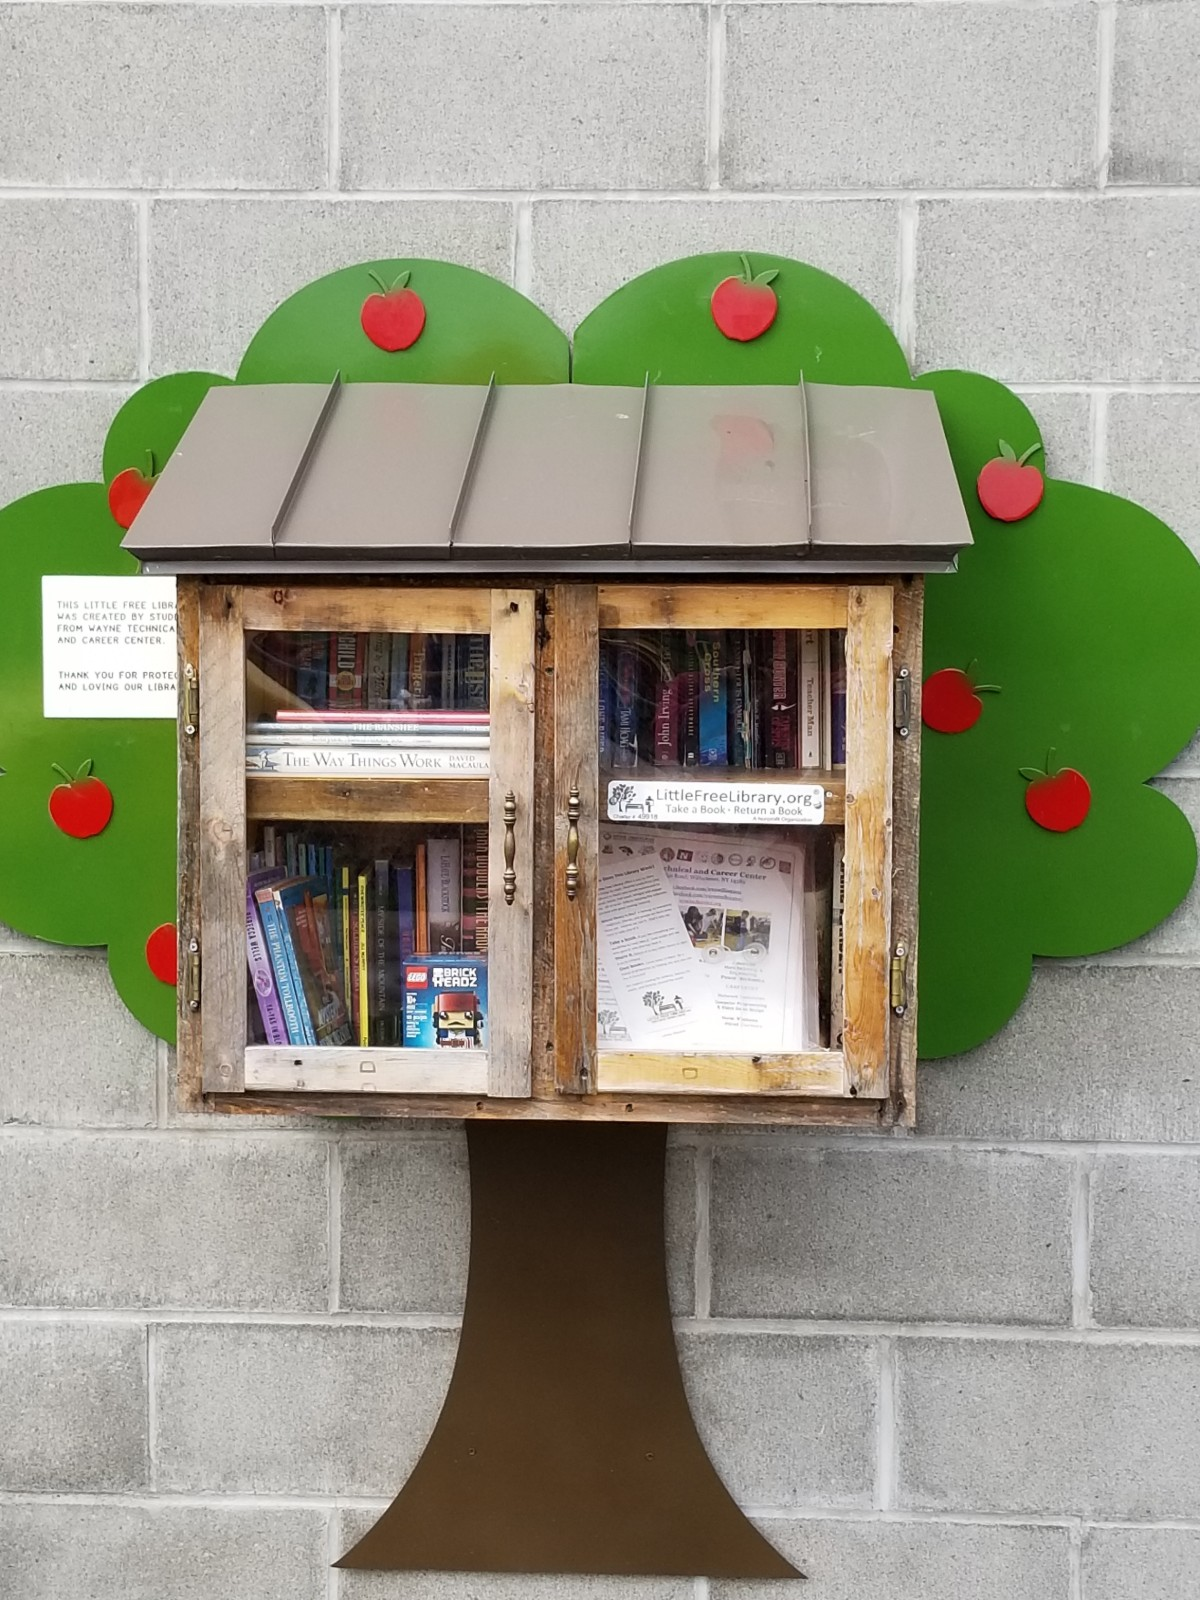 Enjoy the Little Free Library at the Williamson Town Park